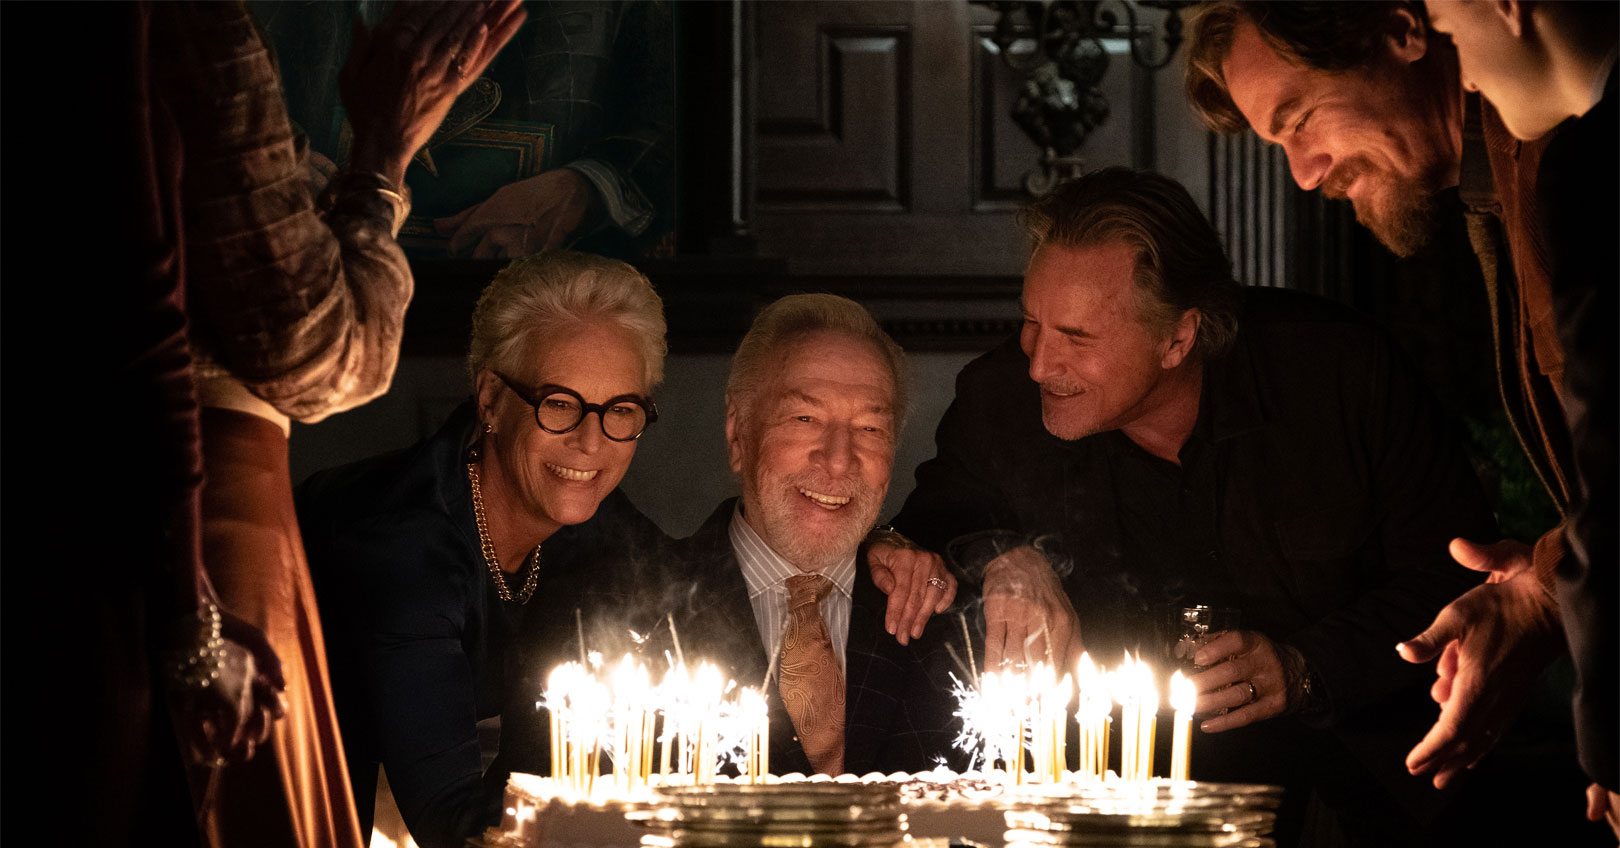 Knives Out - Jamie Lee Curtis, Christopher Plummer, Don Johnson, and Michael Shannon